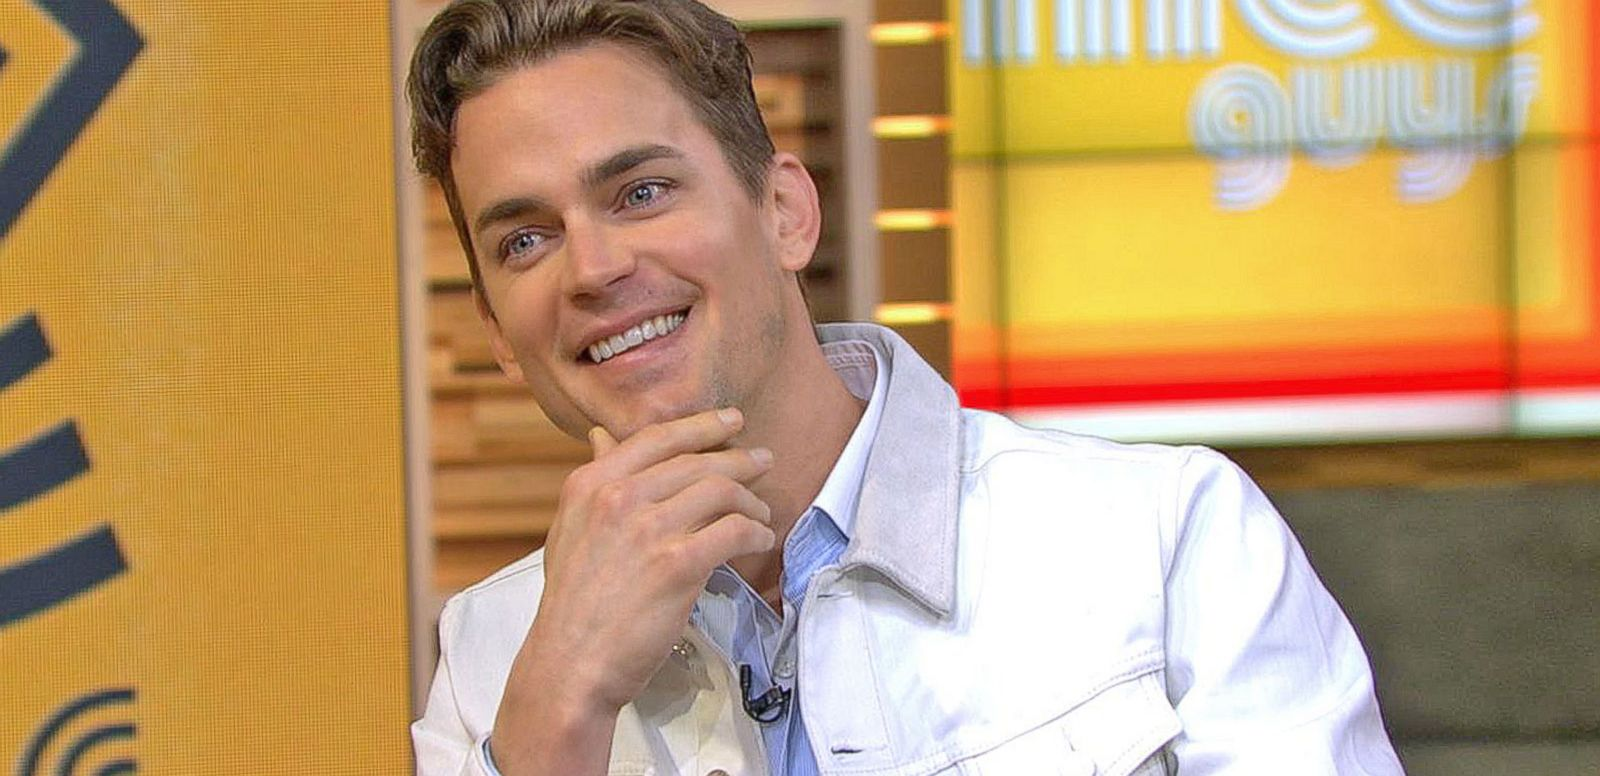 VIDEO: Matt Bomer on Being a Not-So-'Nice Guy'